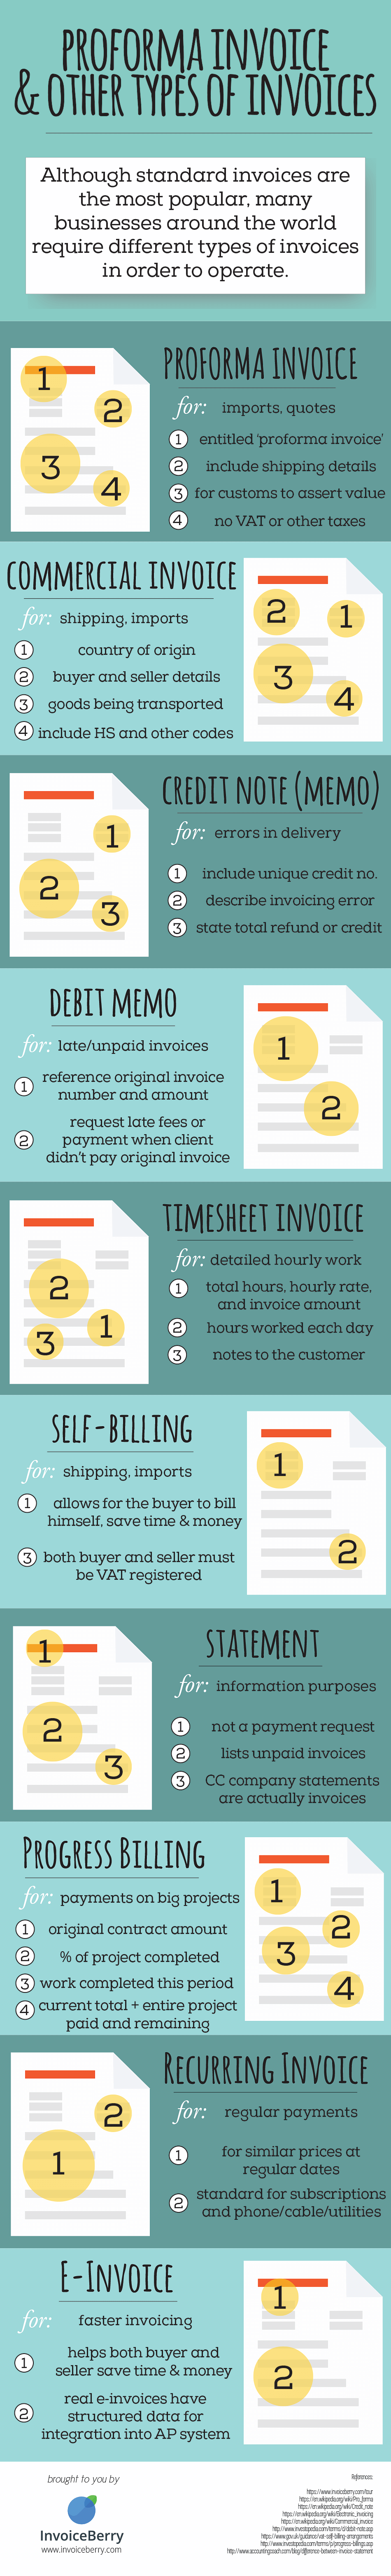 Check out what proforma invoice and other types of invoices are in our infographic